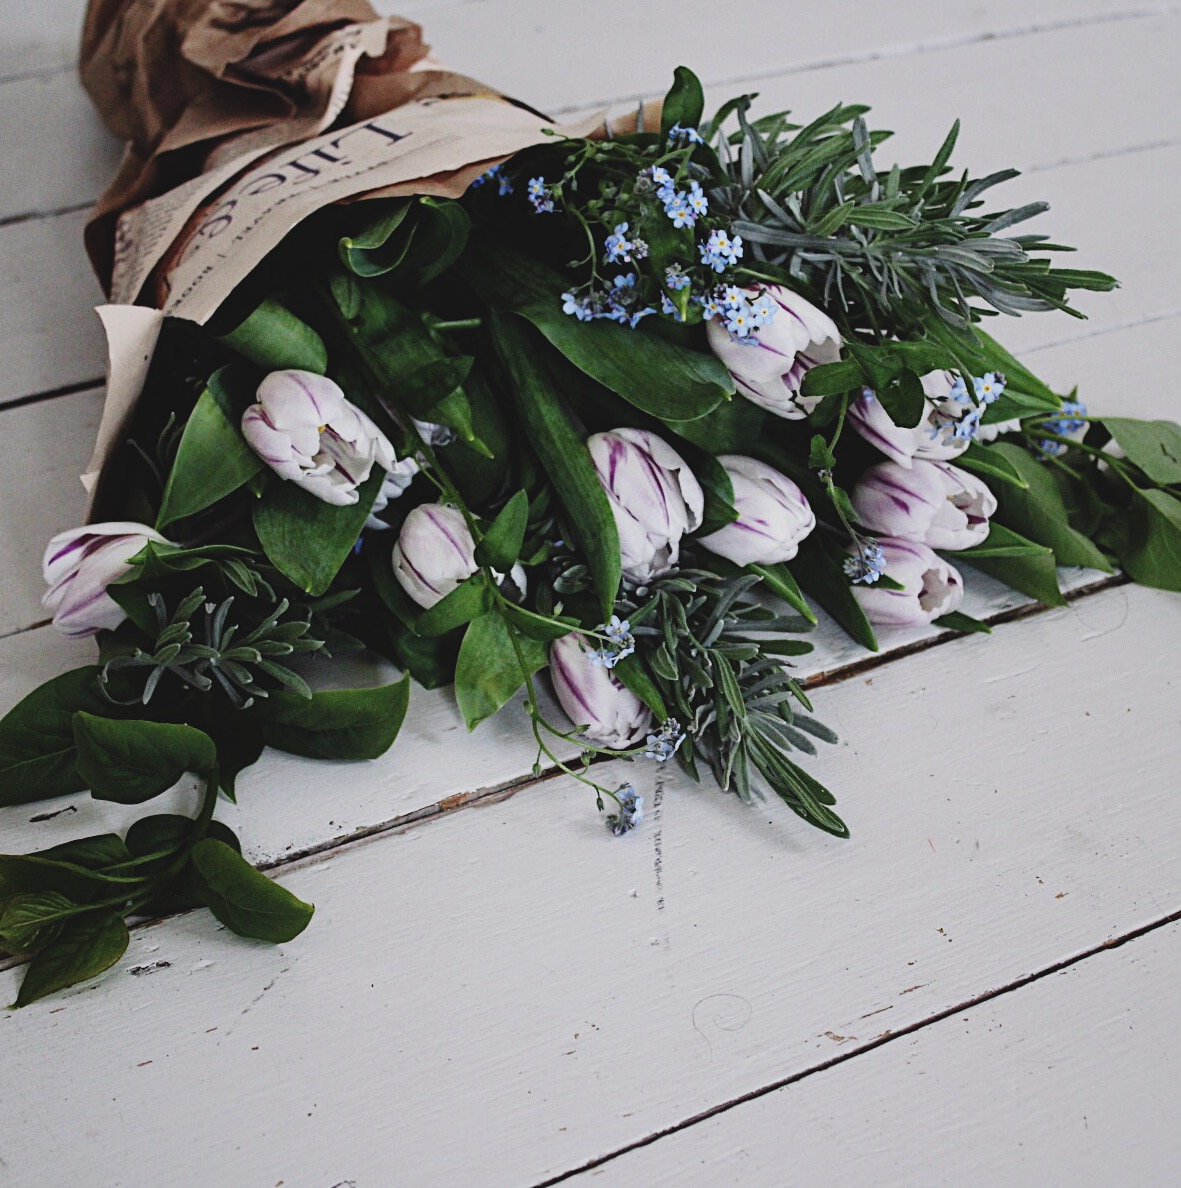 Paint & Haven - Tulips, lavender, forget-me-nots and newspaper, a bouquet of spring garden flower.